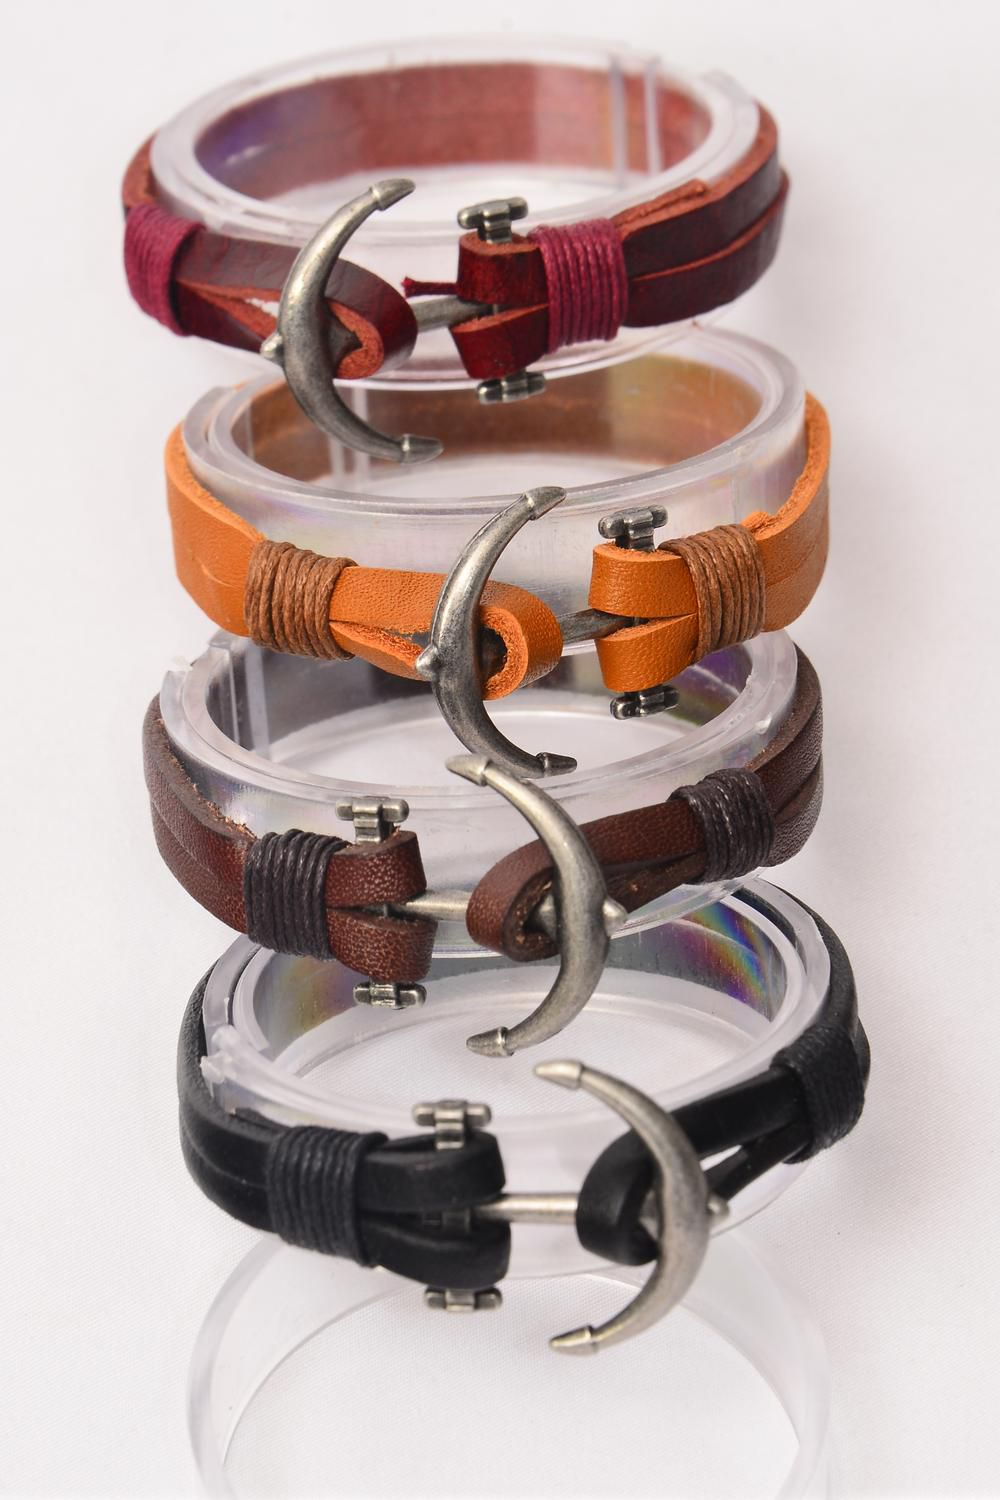 Bracelet Real Leather Anchor Double Wrap/DZ **Unisex** 3 of each Color Asst,Hang Tag OPP Bag & UPC Code